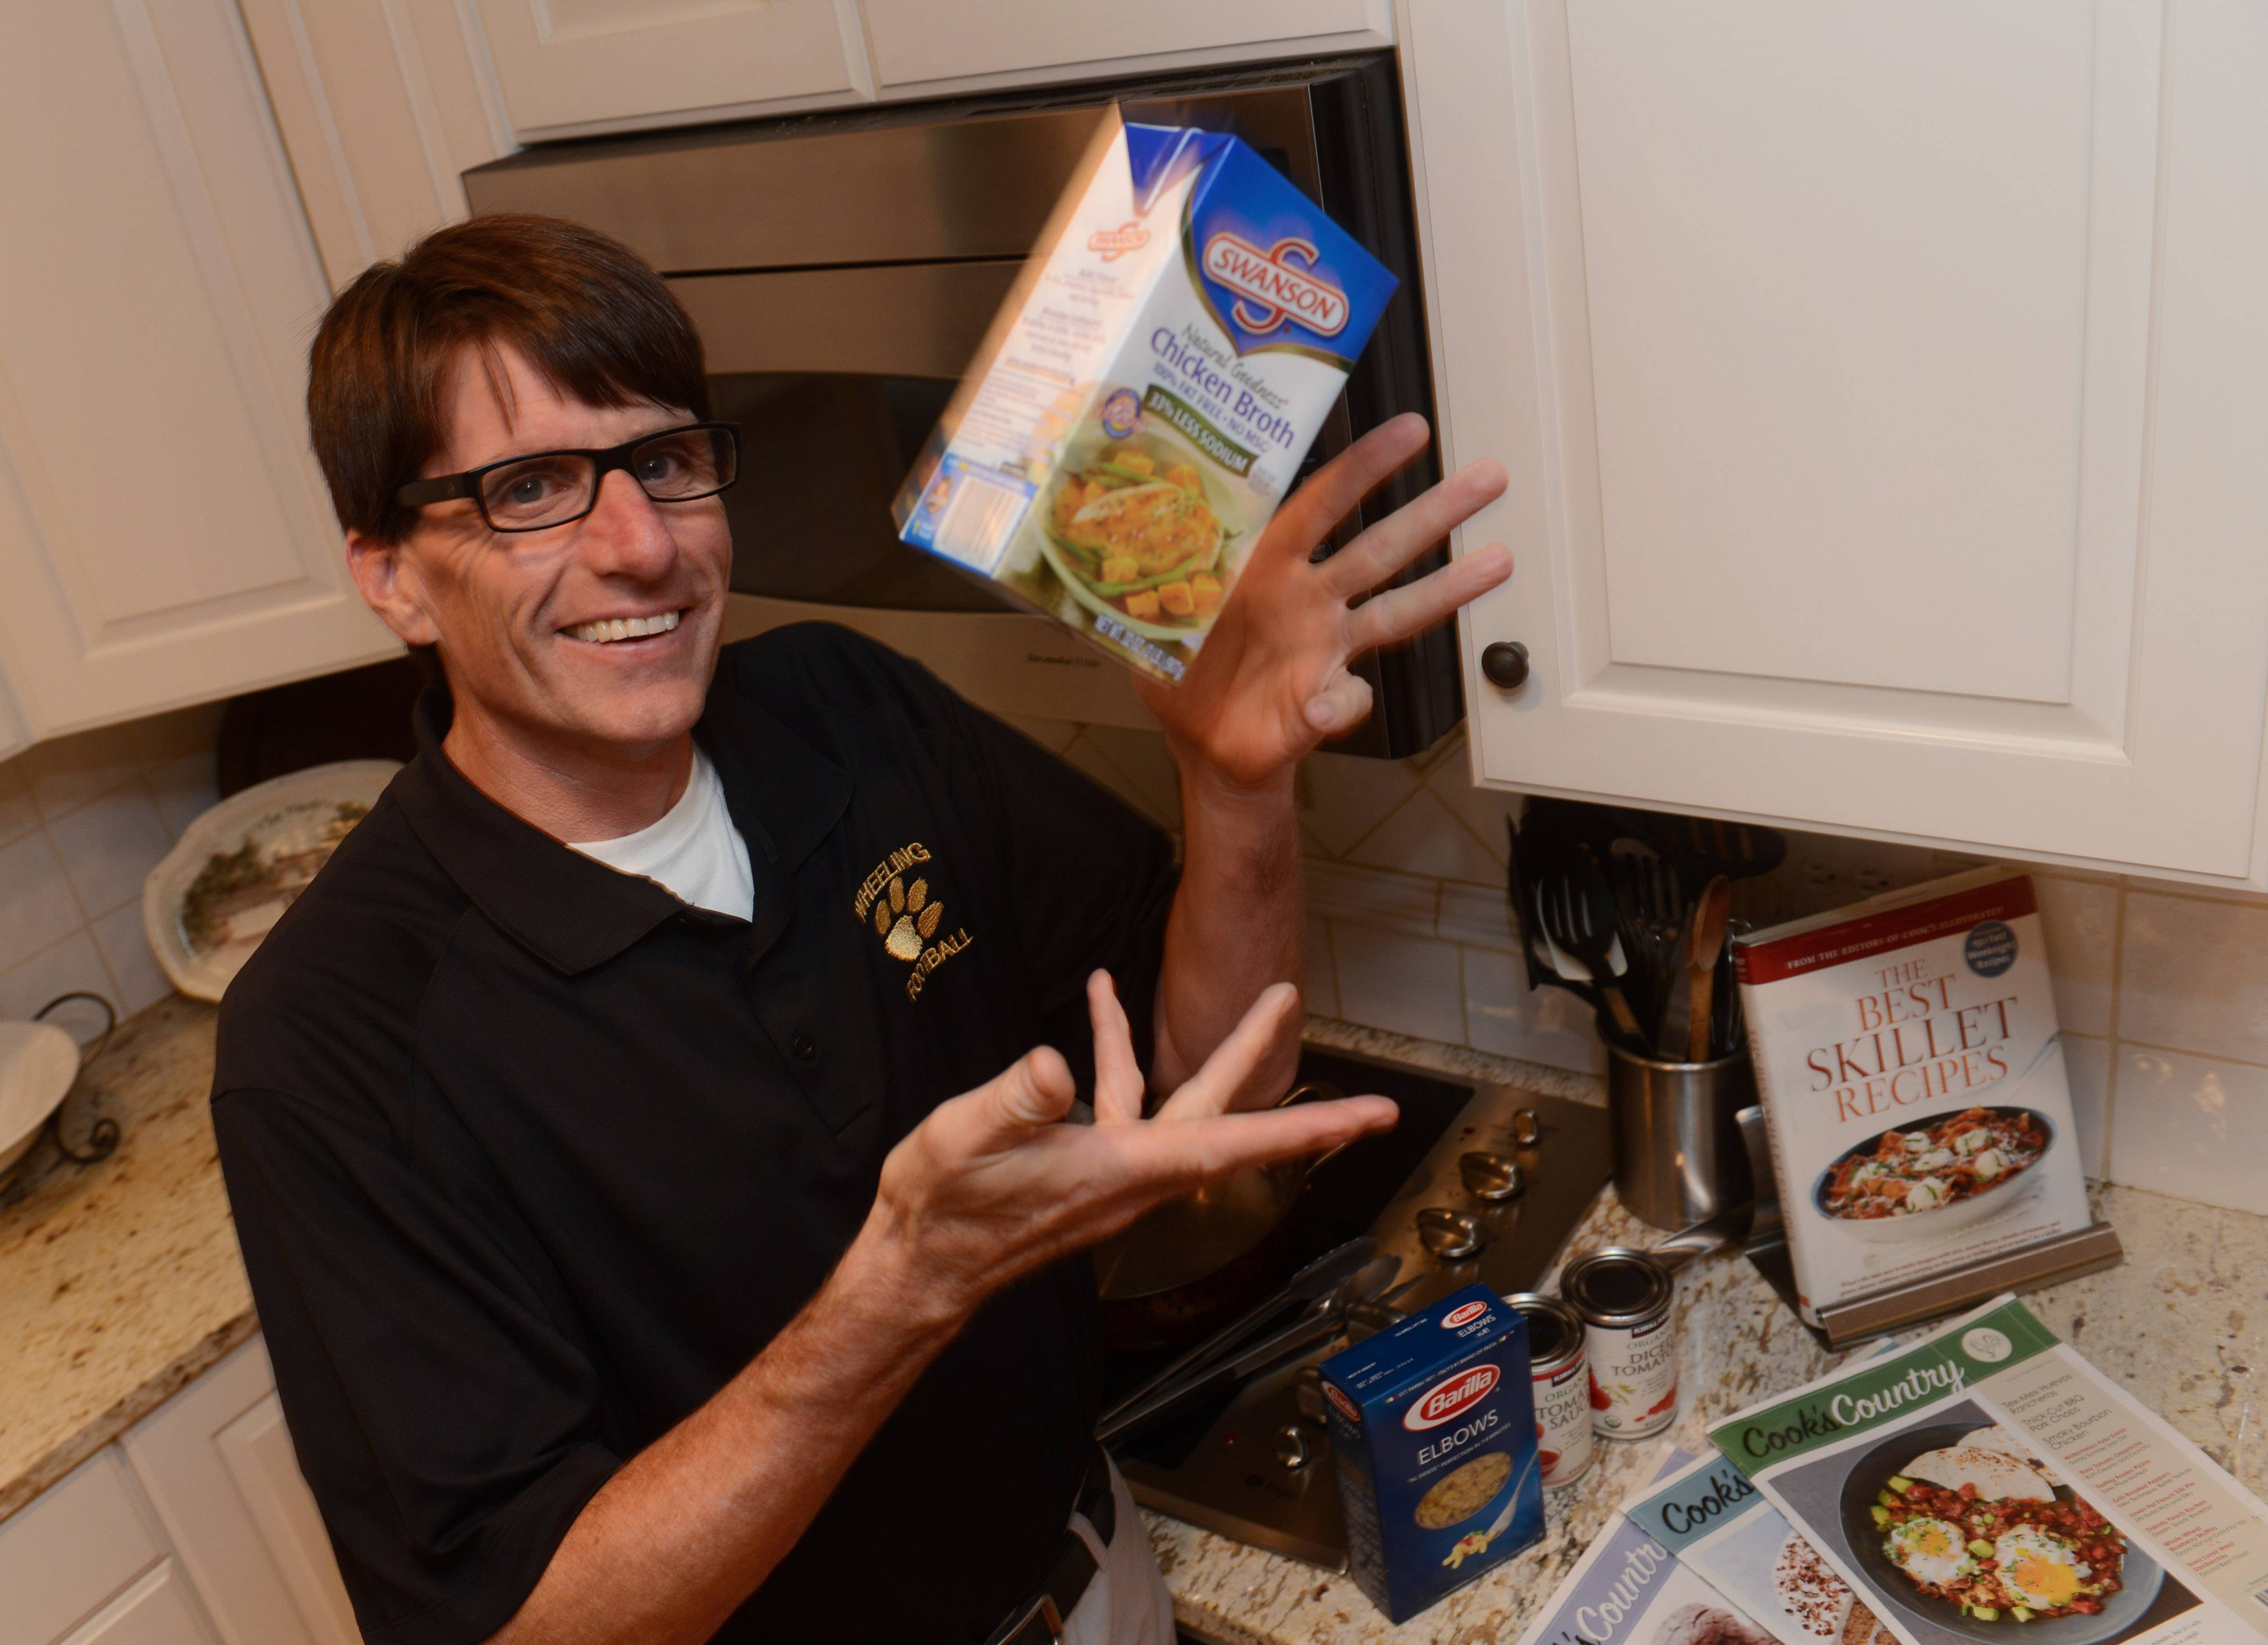 Steve May of Palatine frequently uses chicken broth in his recipes.